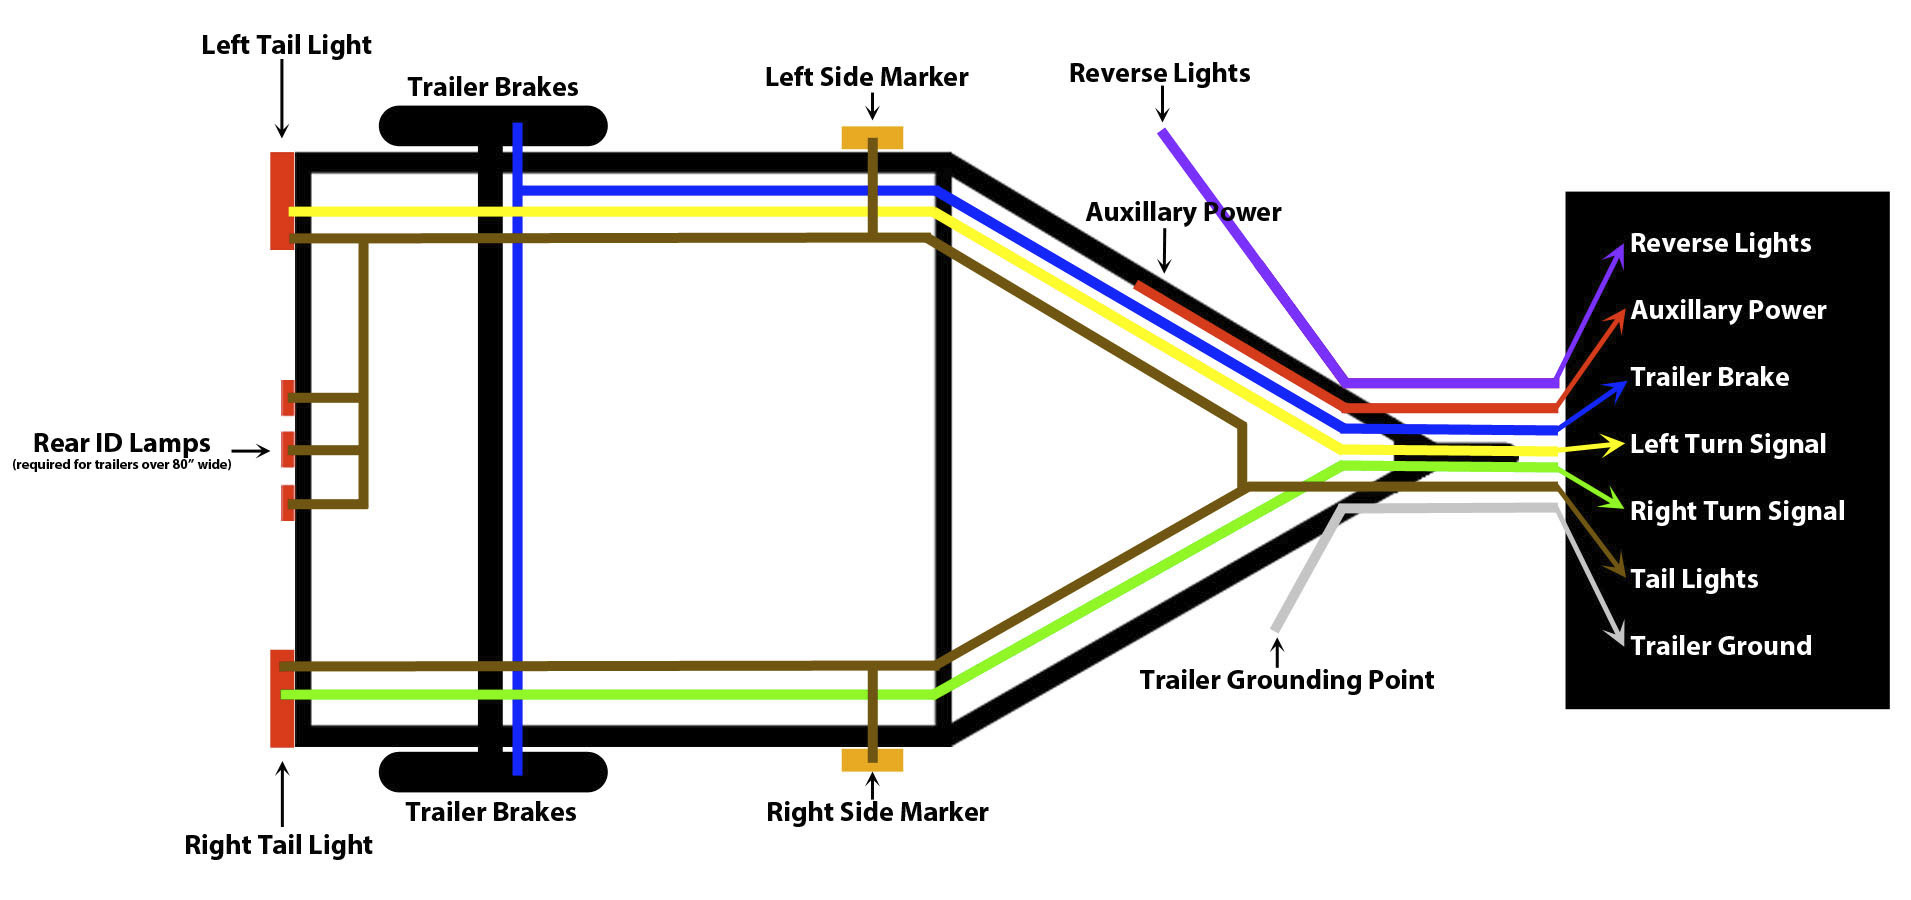 How To Wire Trailer Lights - Trailer Wiring Guide & Videos - Trailer Rear Lights Wiring Diagram